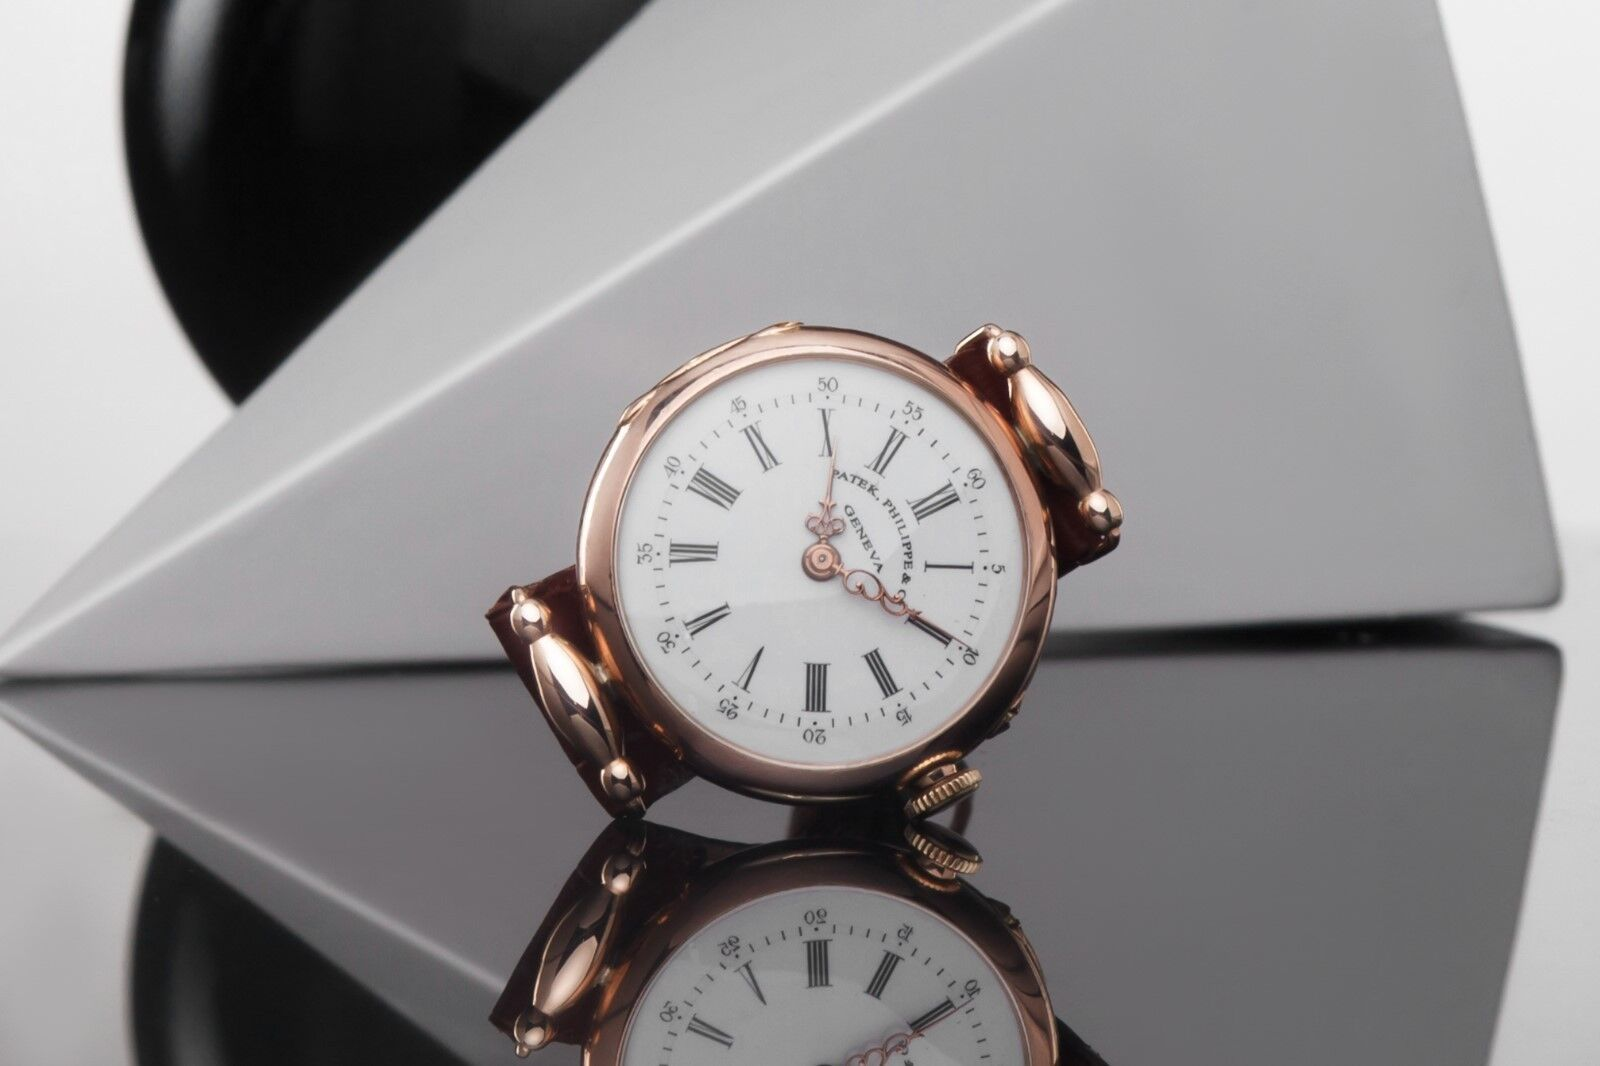 Antique Patek Philippe & Co Solid Gold Wrist Watch 18k Case - watch picture 1